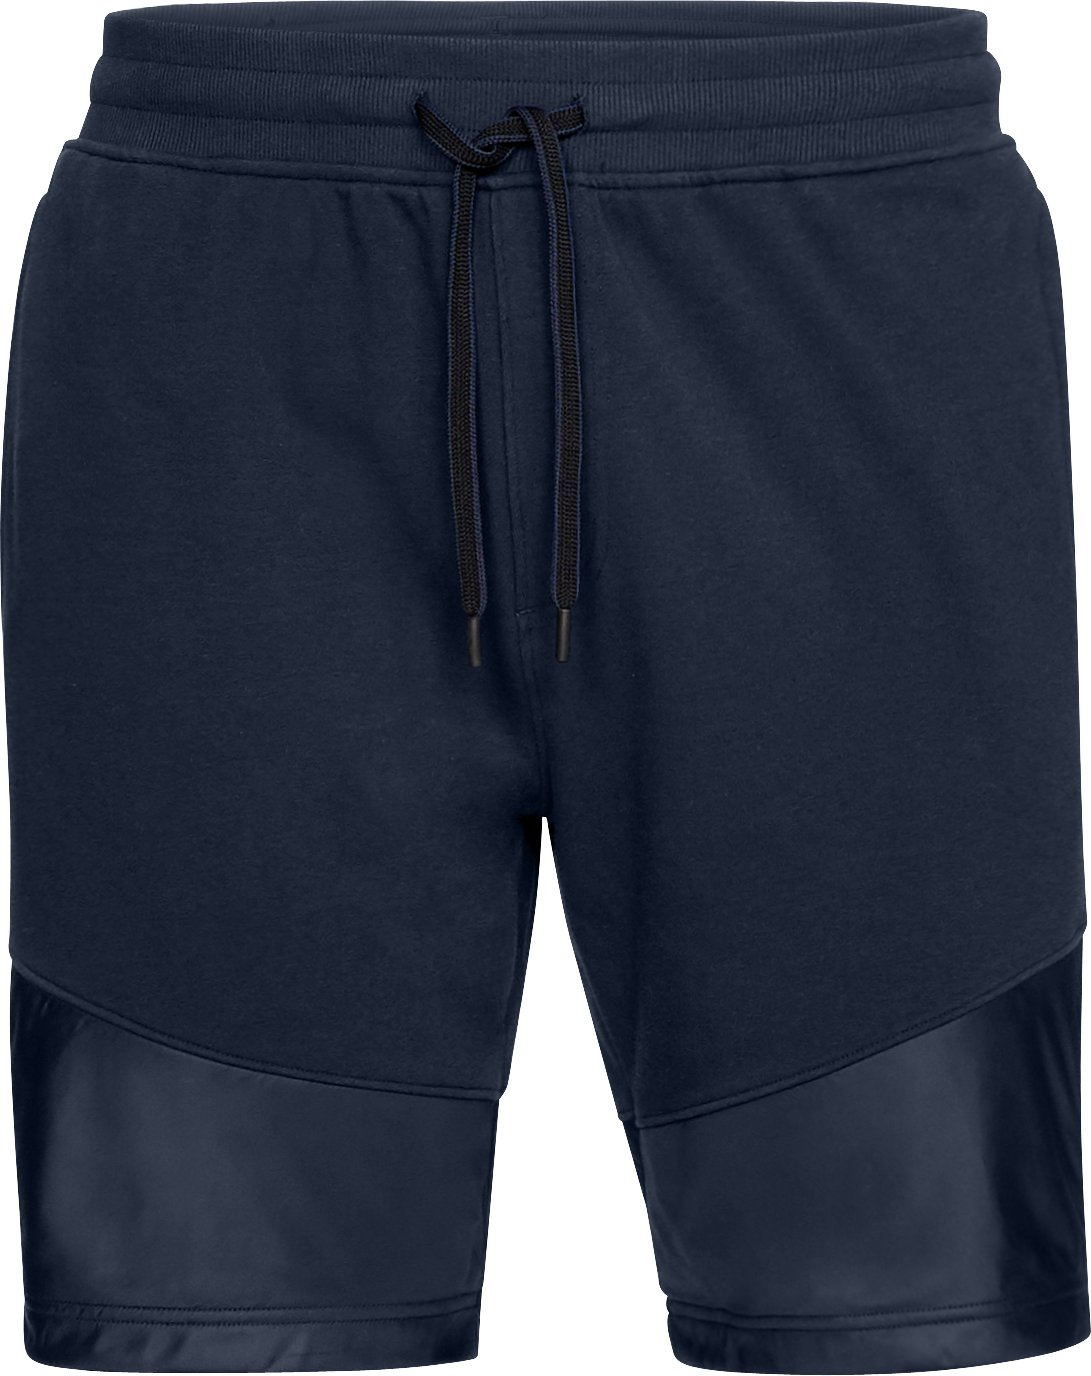 Men's UA Microthread Terry Shorts, Academy, undefined